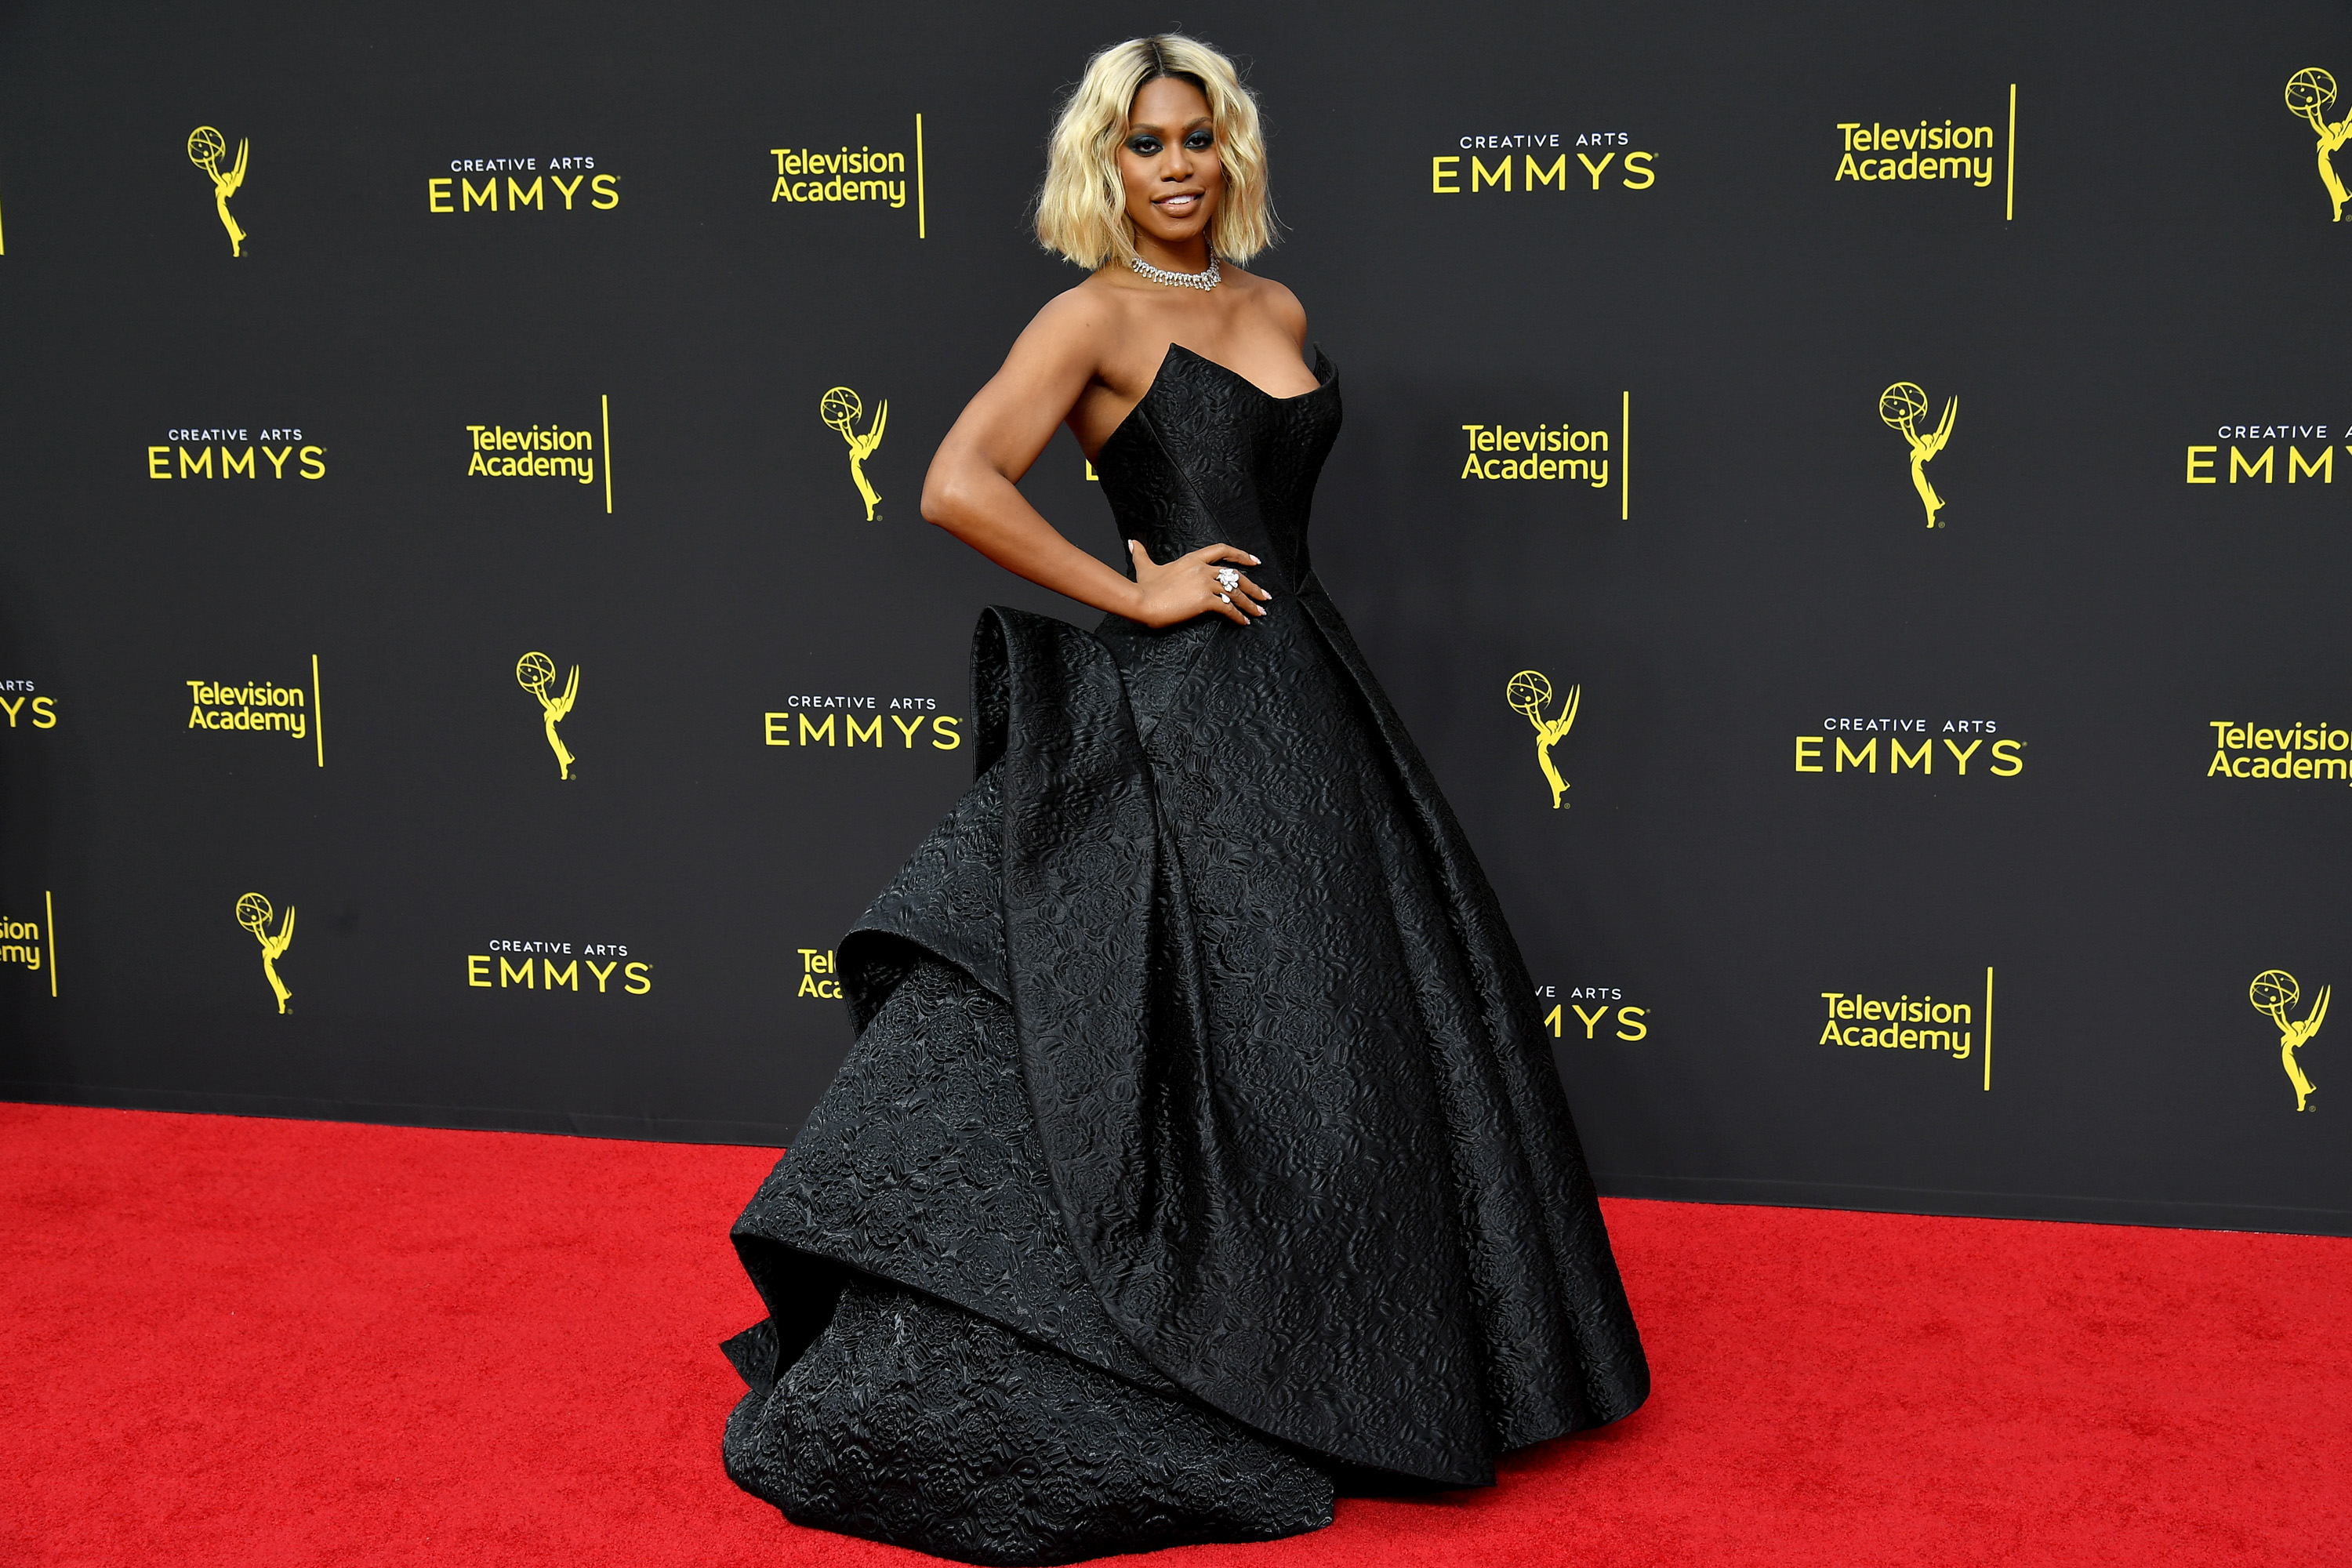 Creative Arts Emmy Awards 2019: The Best of the 2019 Red Carpet — Day Two